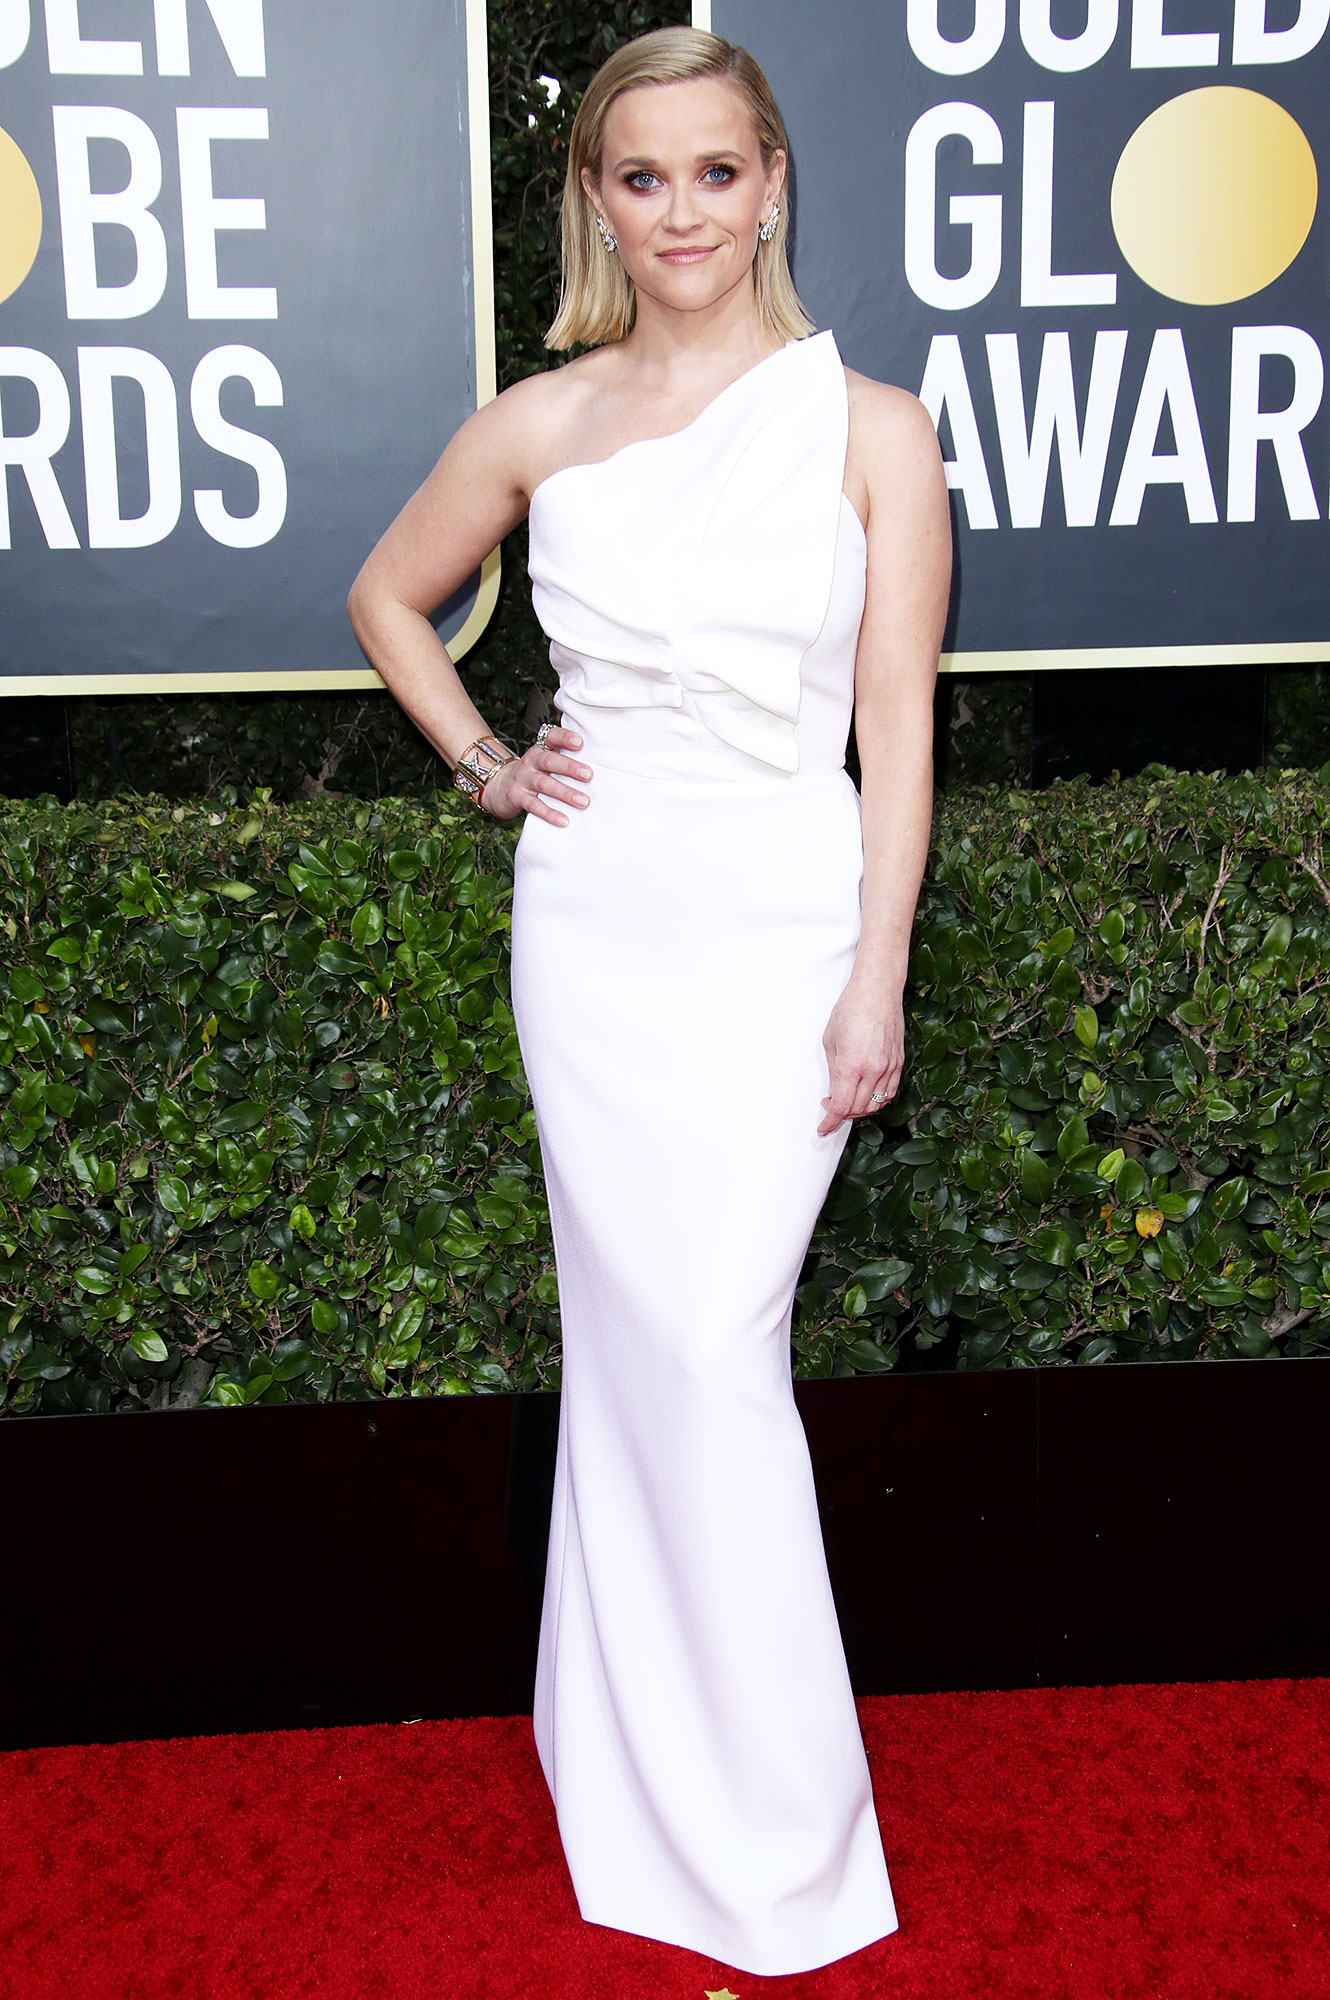 Best Dressed of the Night Reese Witherspoon Golden Globes 2020